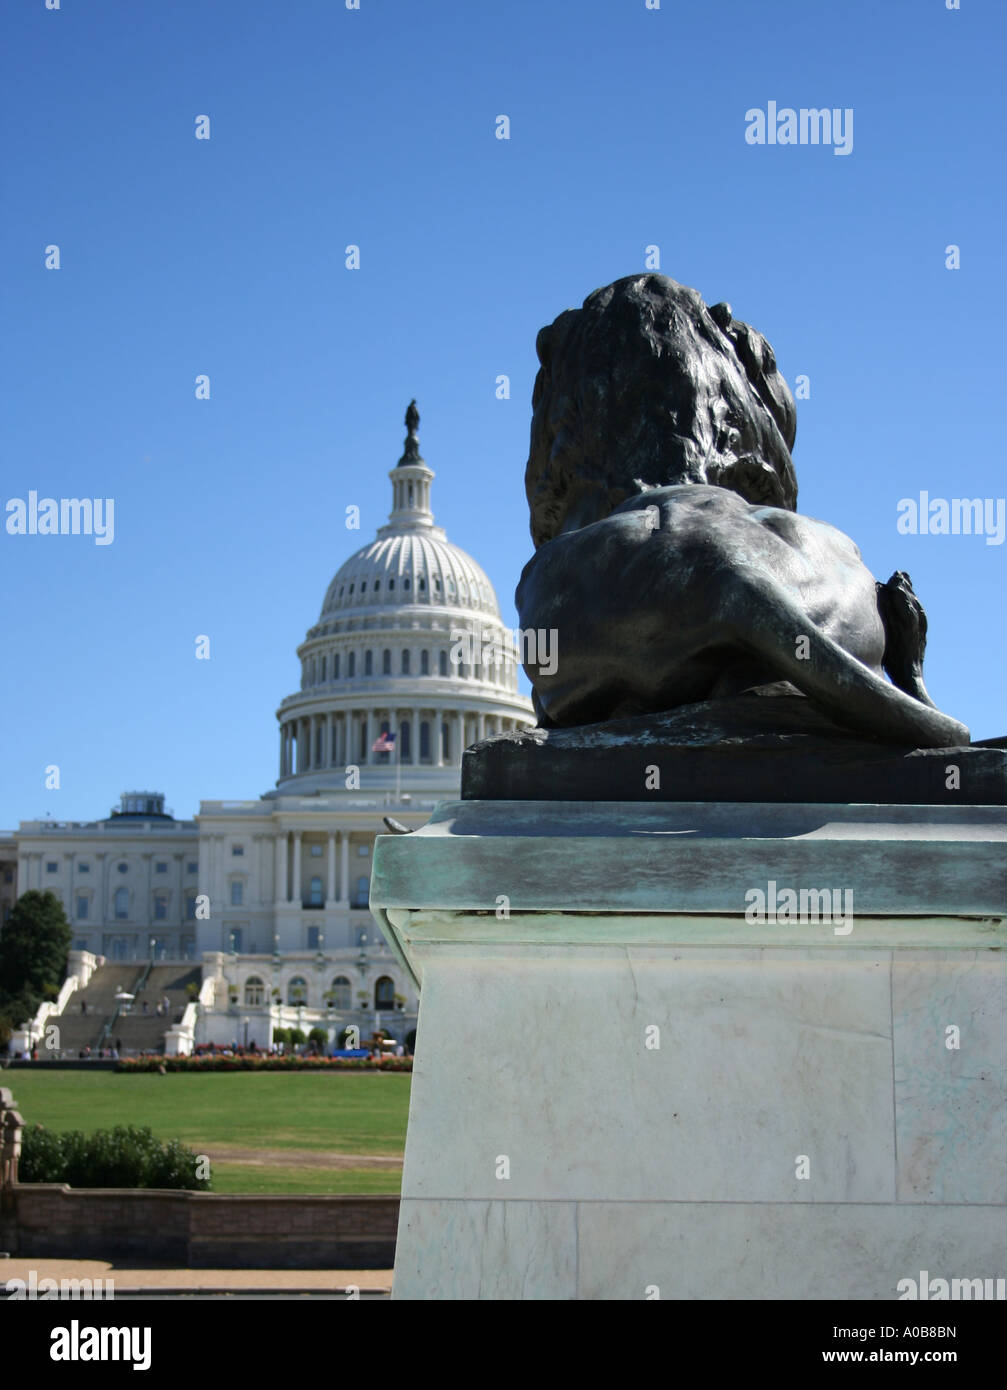 rear-view-of-lion-statue-and-dome-of-us-